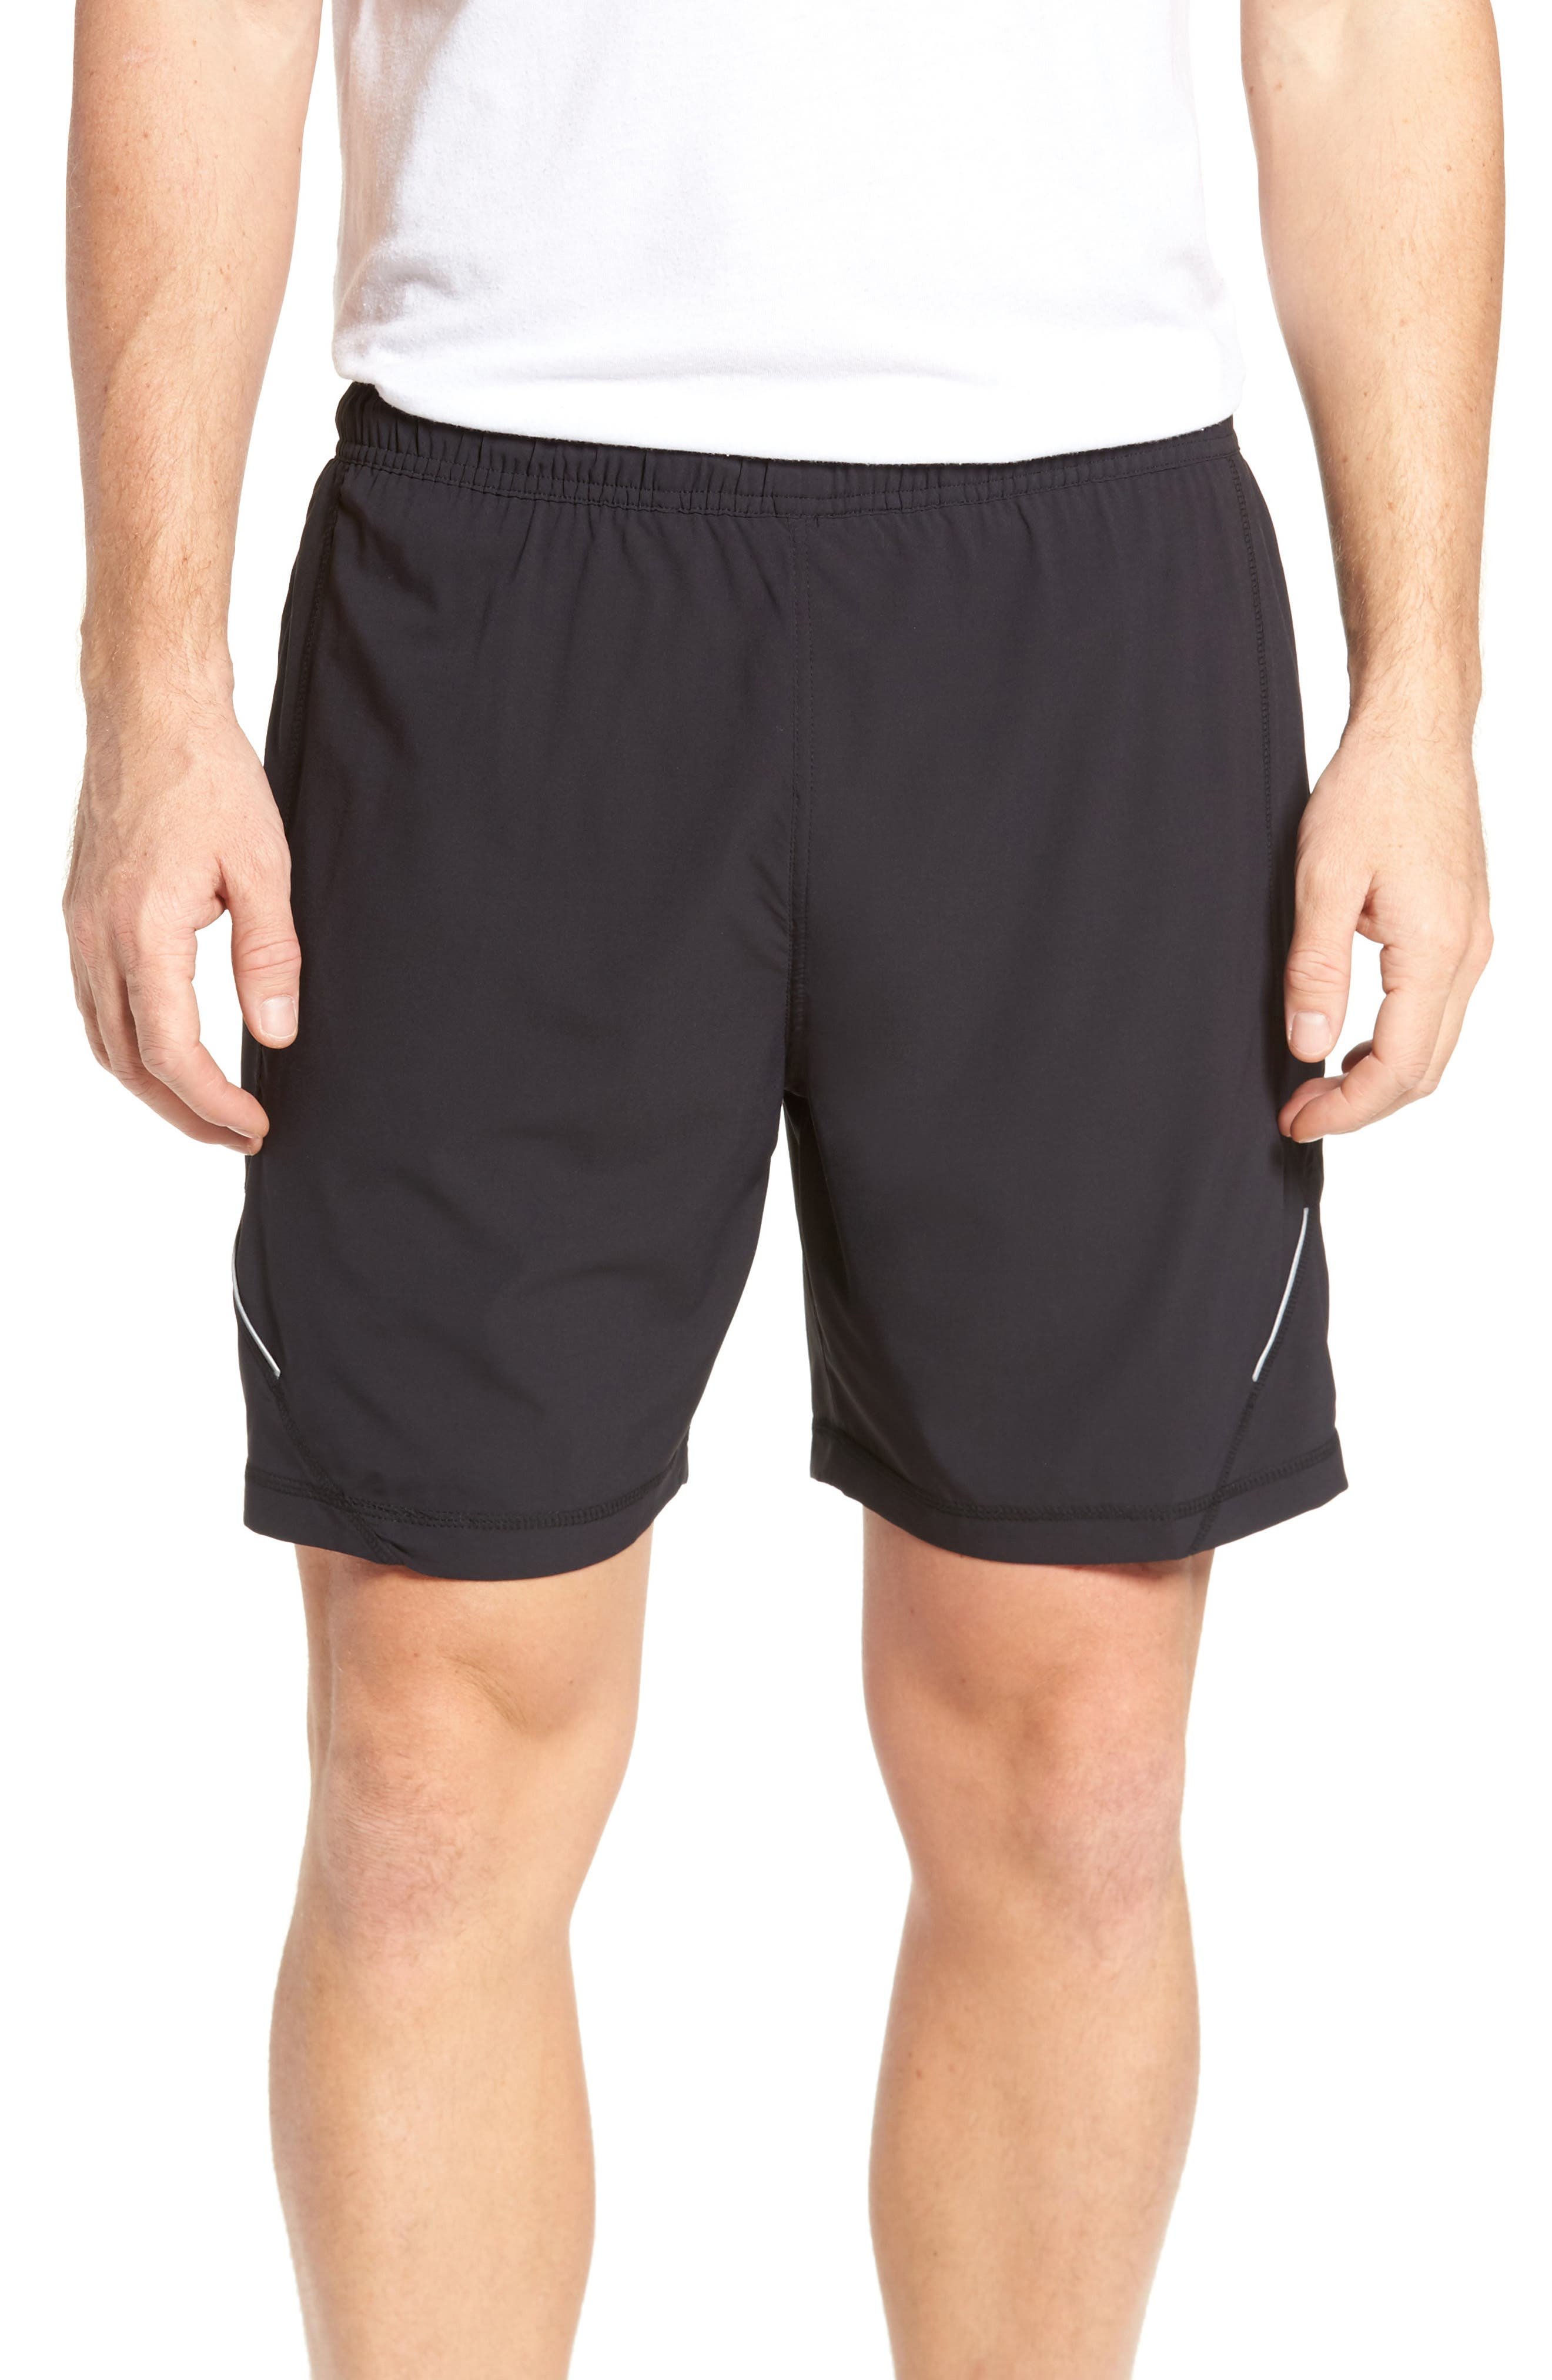 Propulsion Athletic Shorts,                         Main,                         color, BLACK